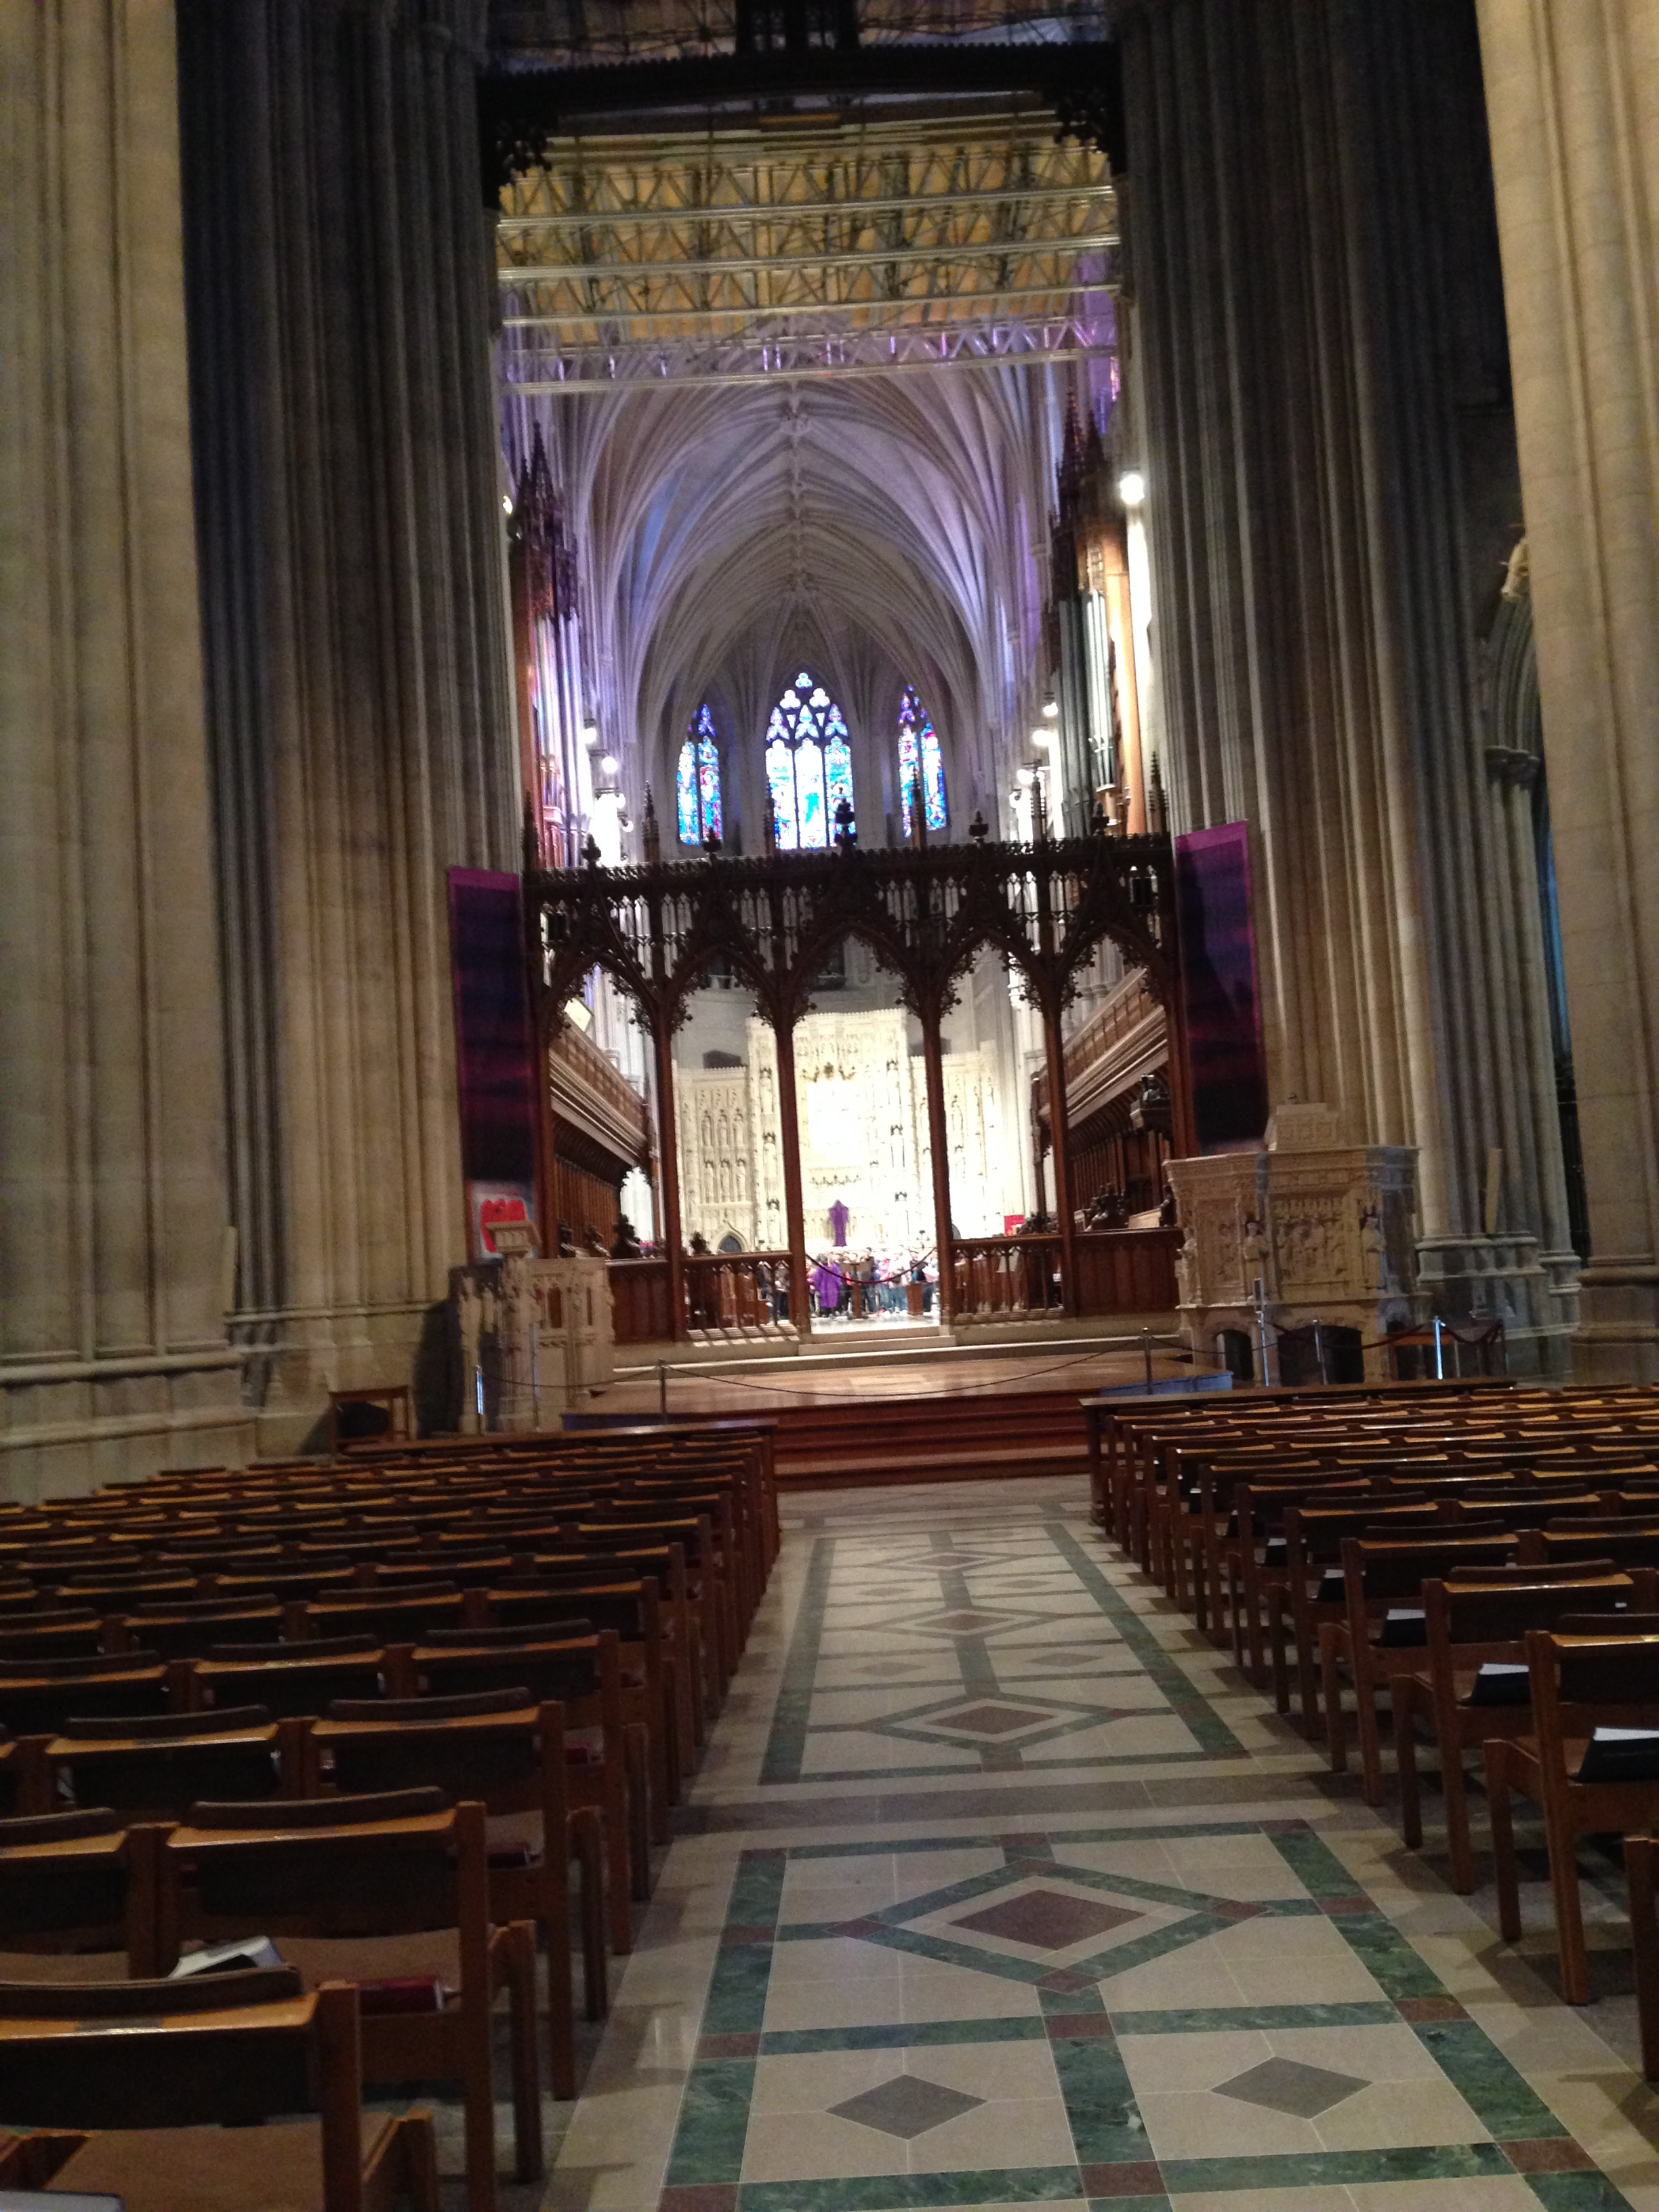 Looking toward the crossing area inside the National Cathedral.